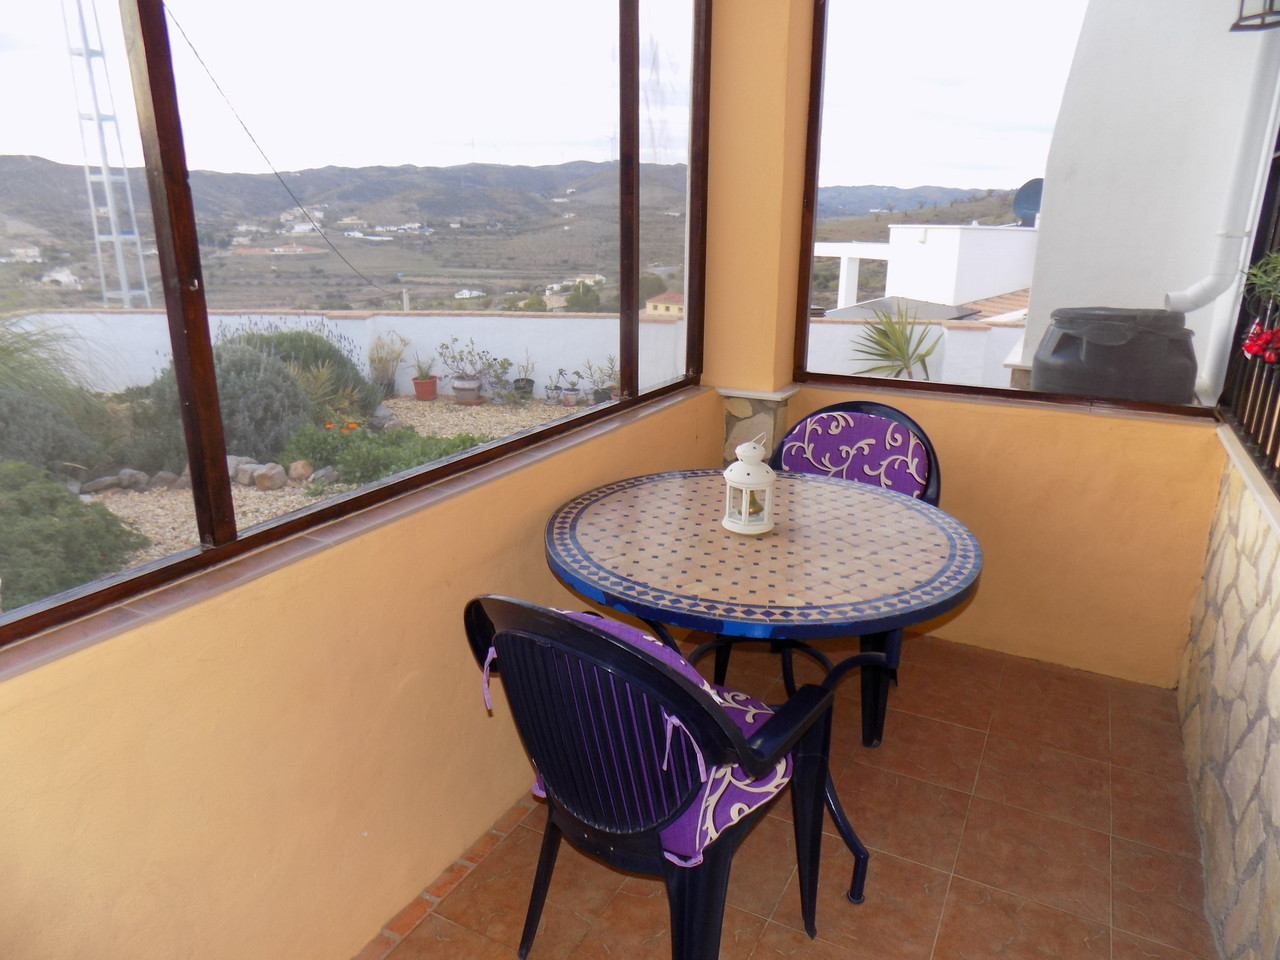 Propery For Sale in Huércal-Overa, Spain image 12